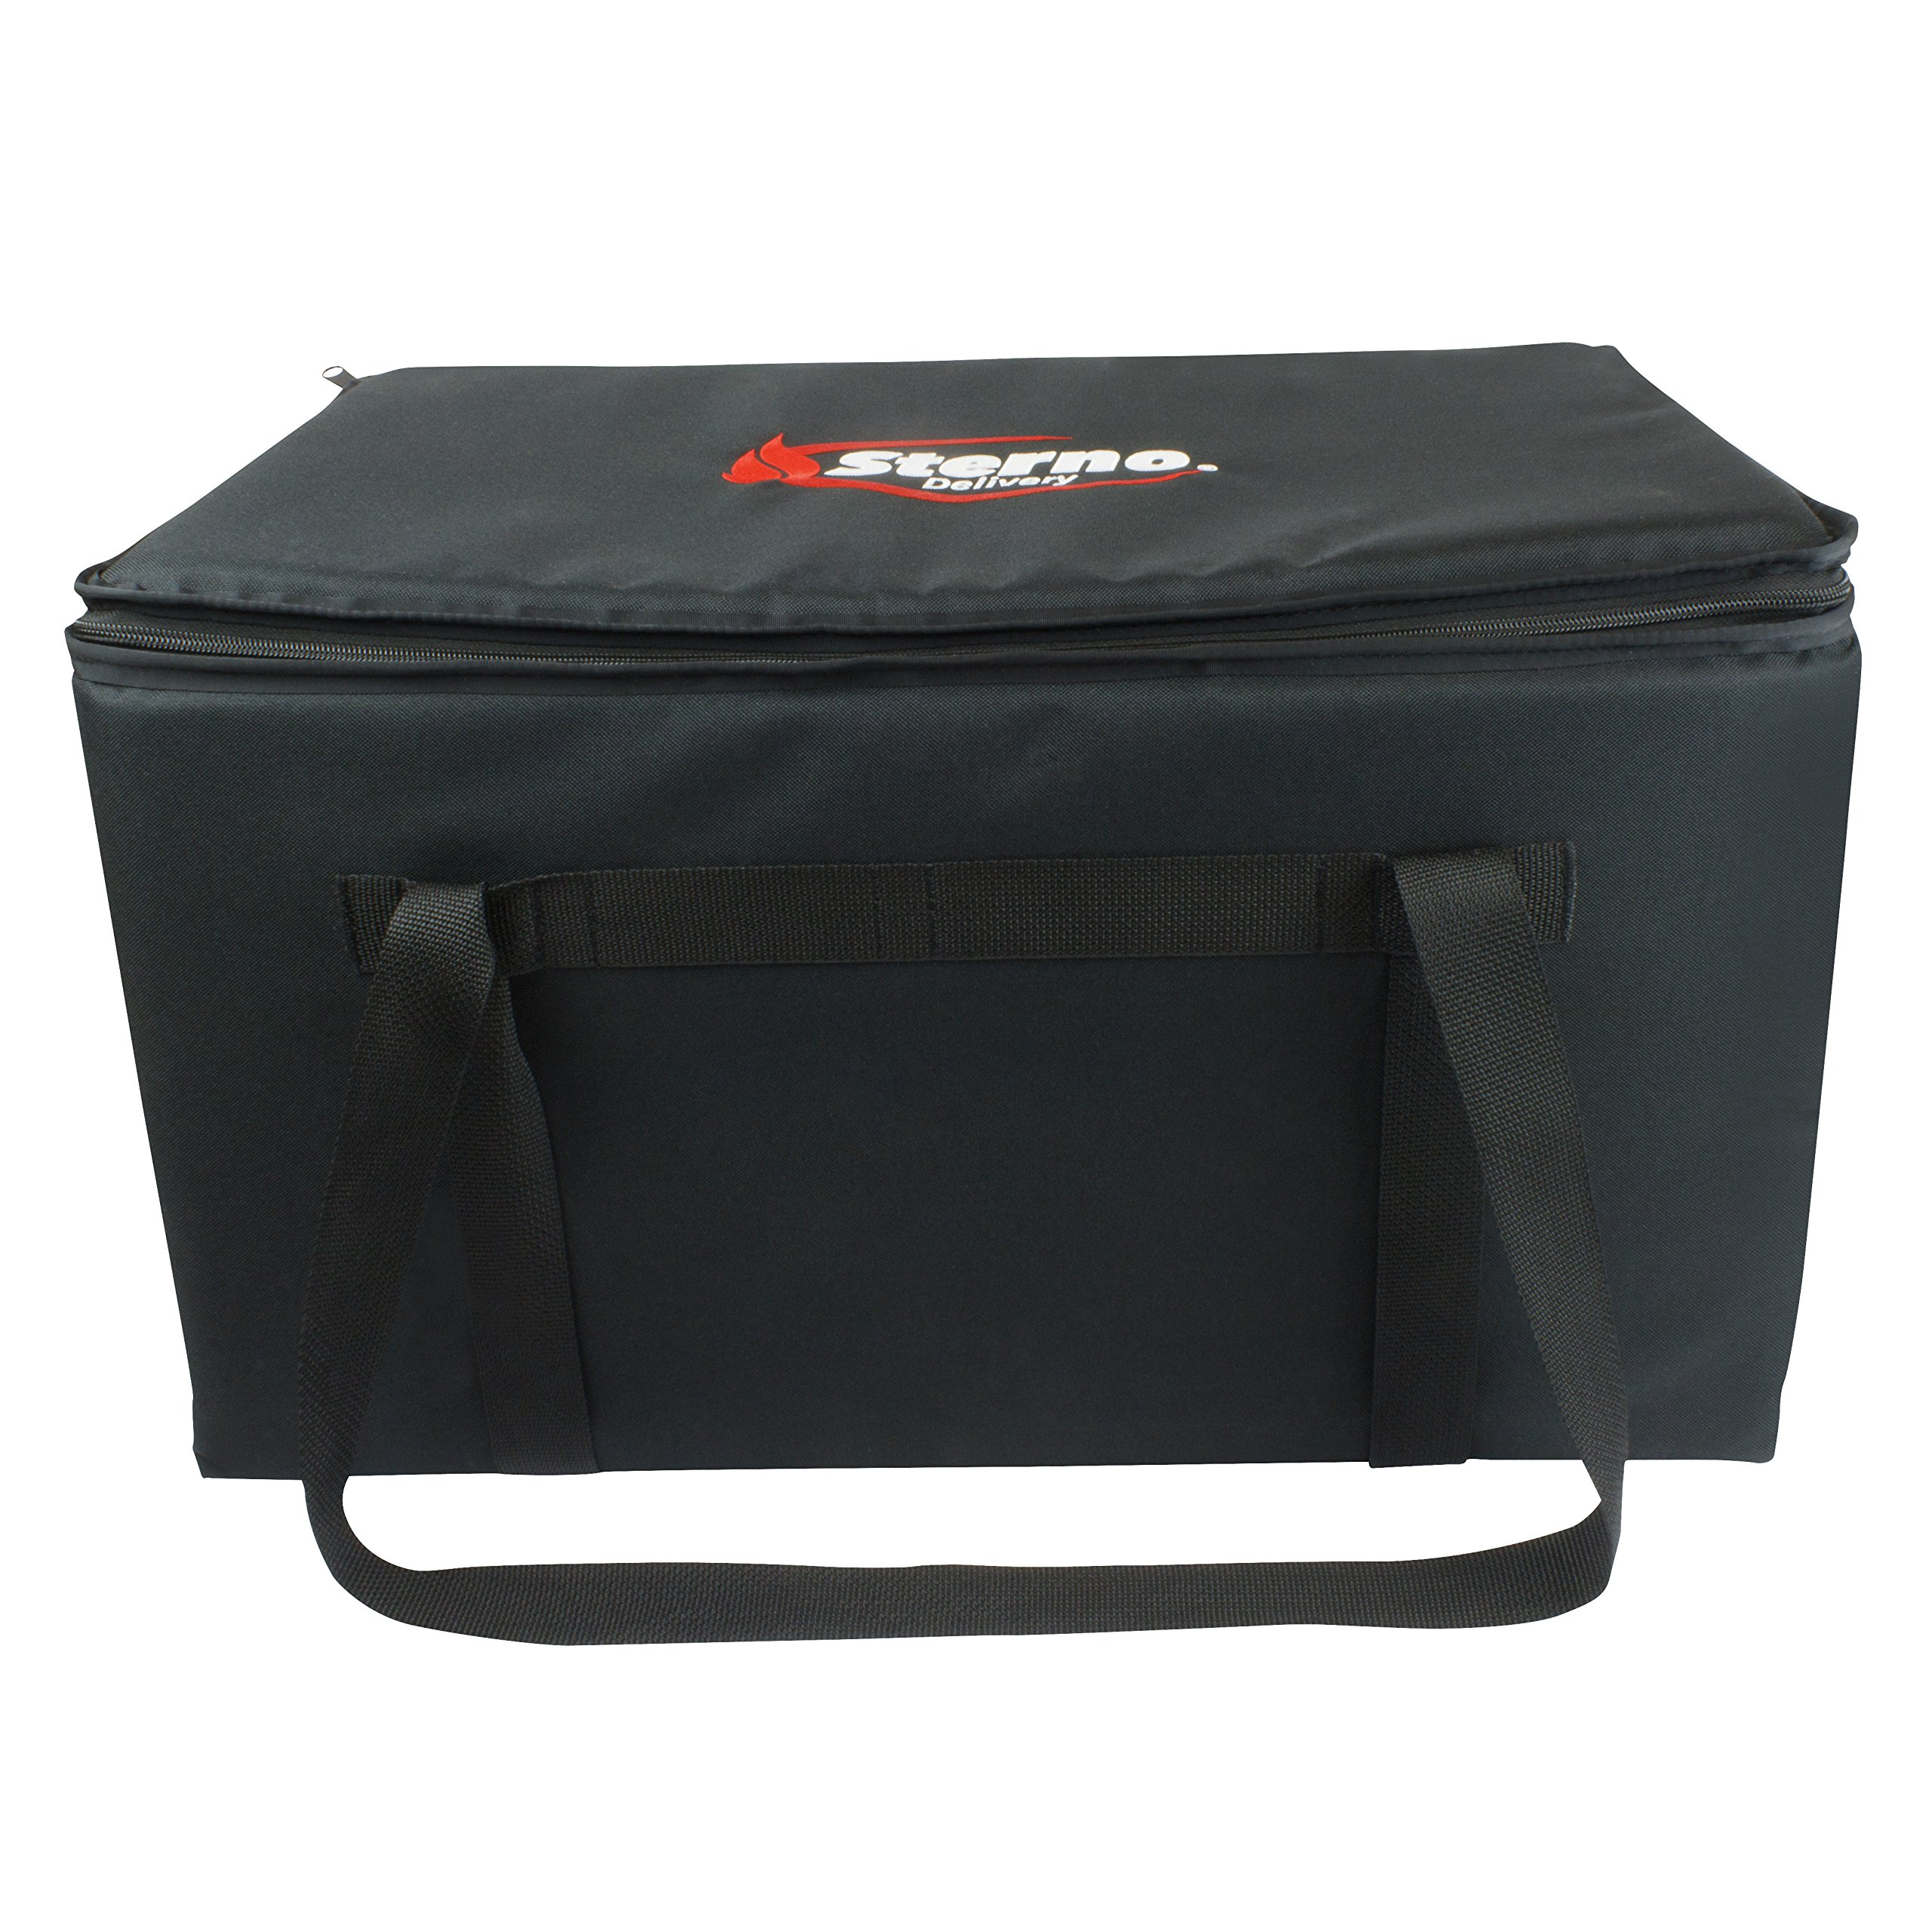 Sterno Delivery 70512 Insulated Food Carrier Catering - Large